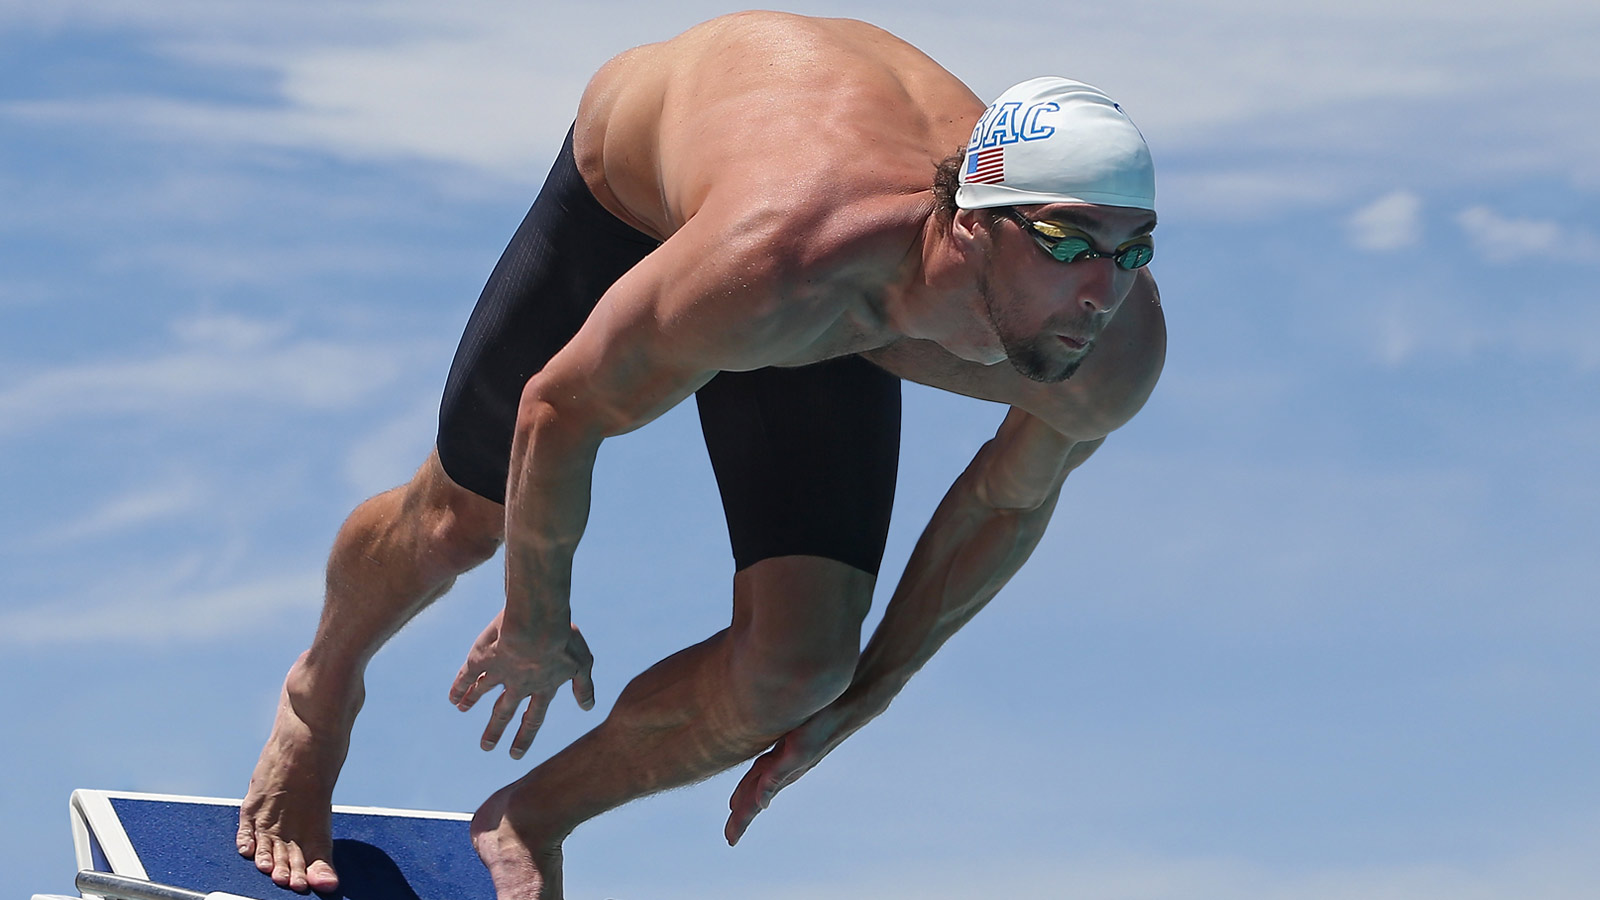 Michael Phelps dives in at Rio 2016